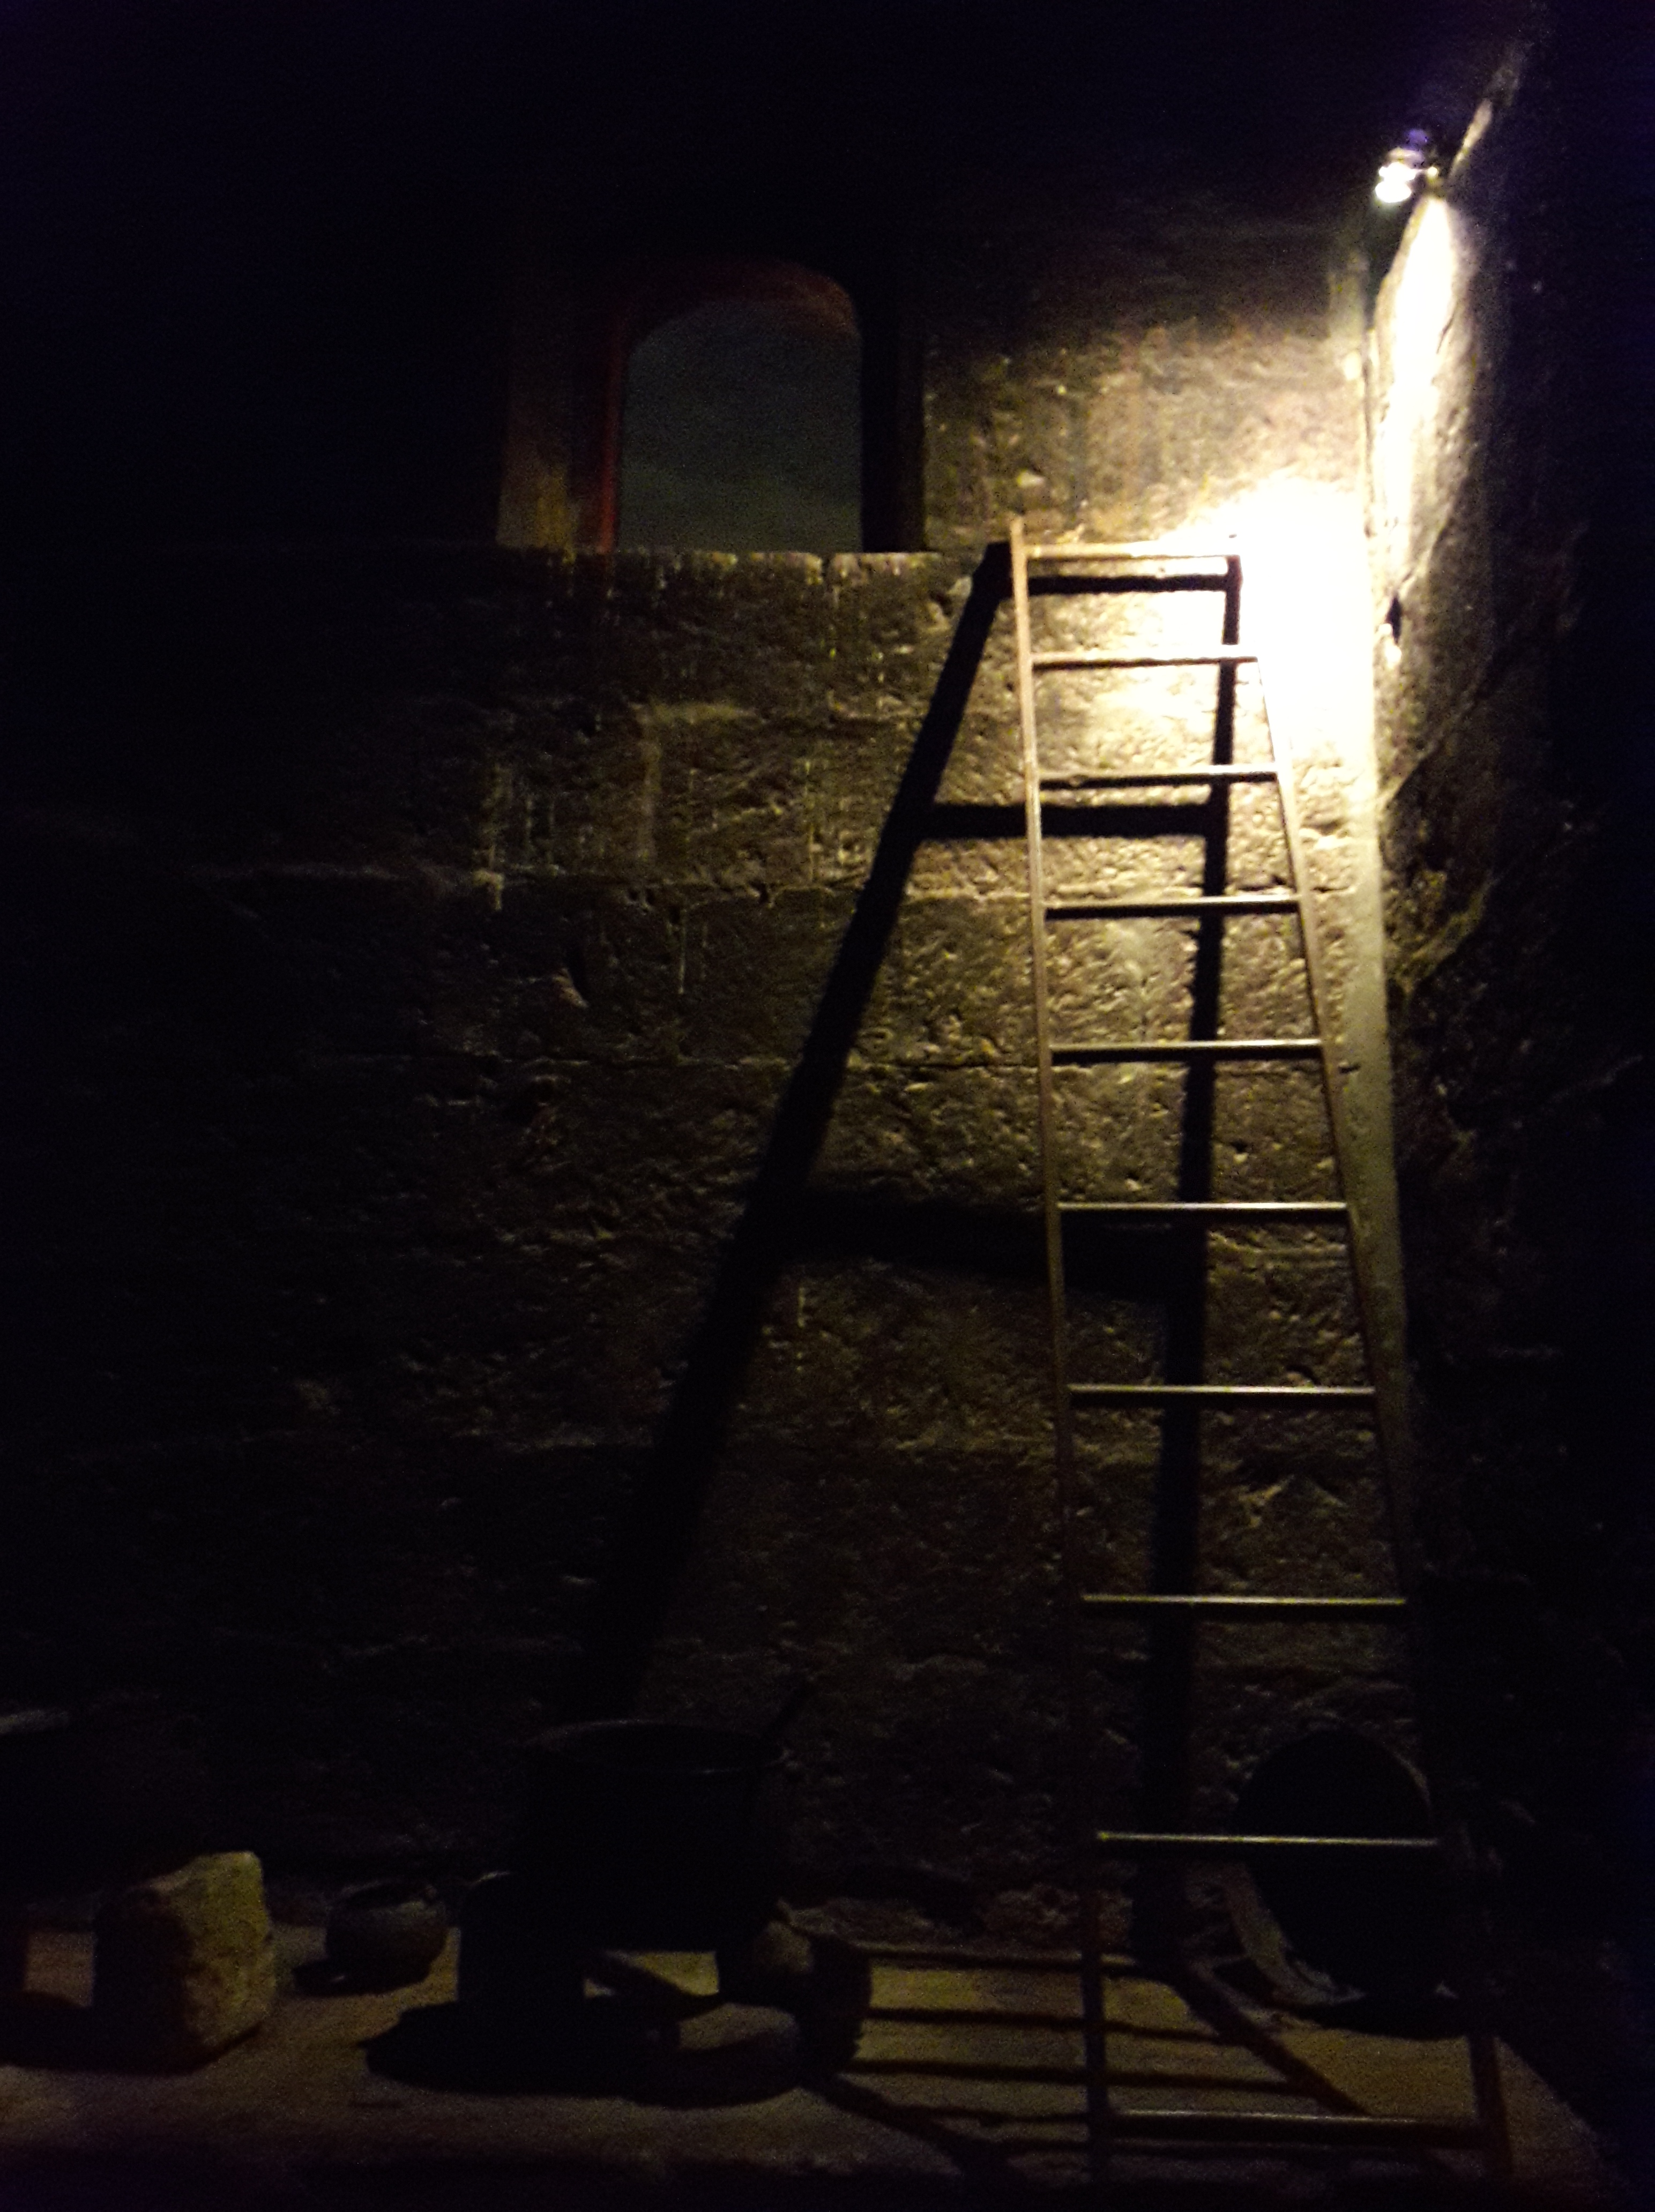 a ladder leaning on the wall